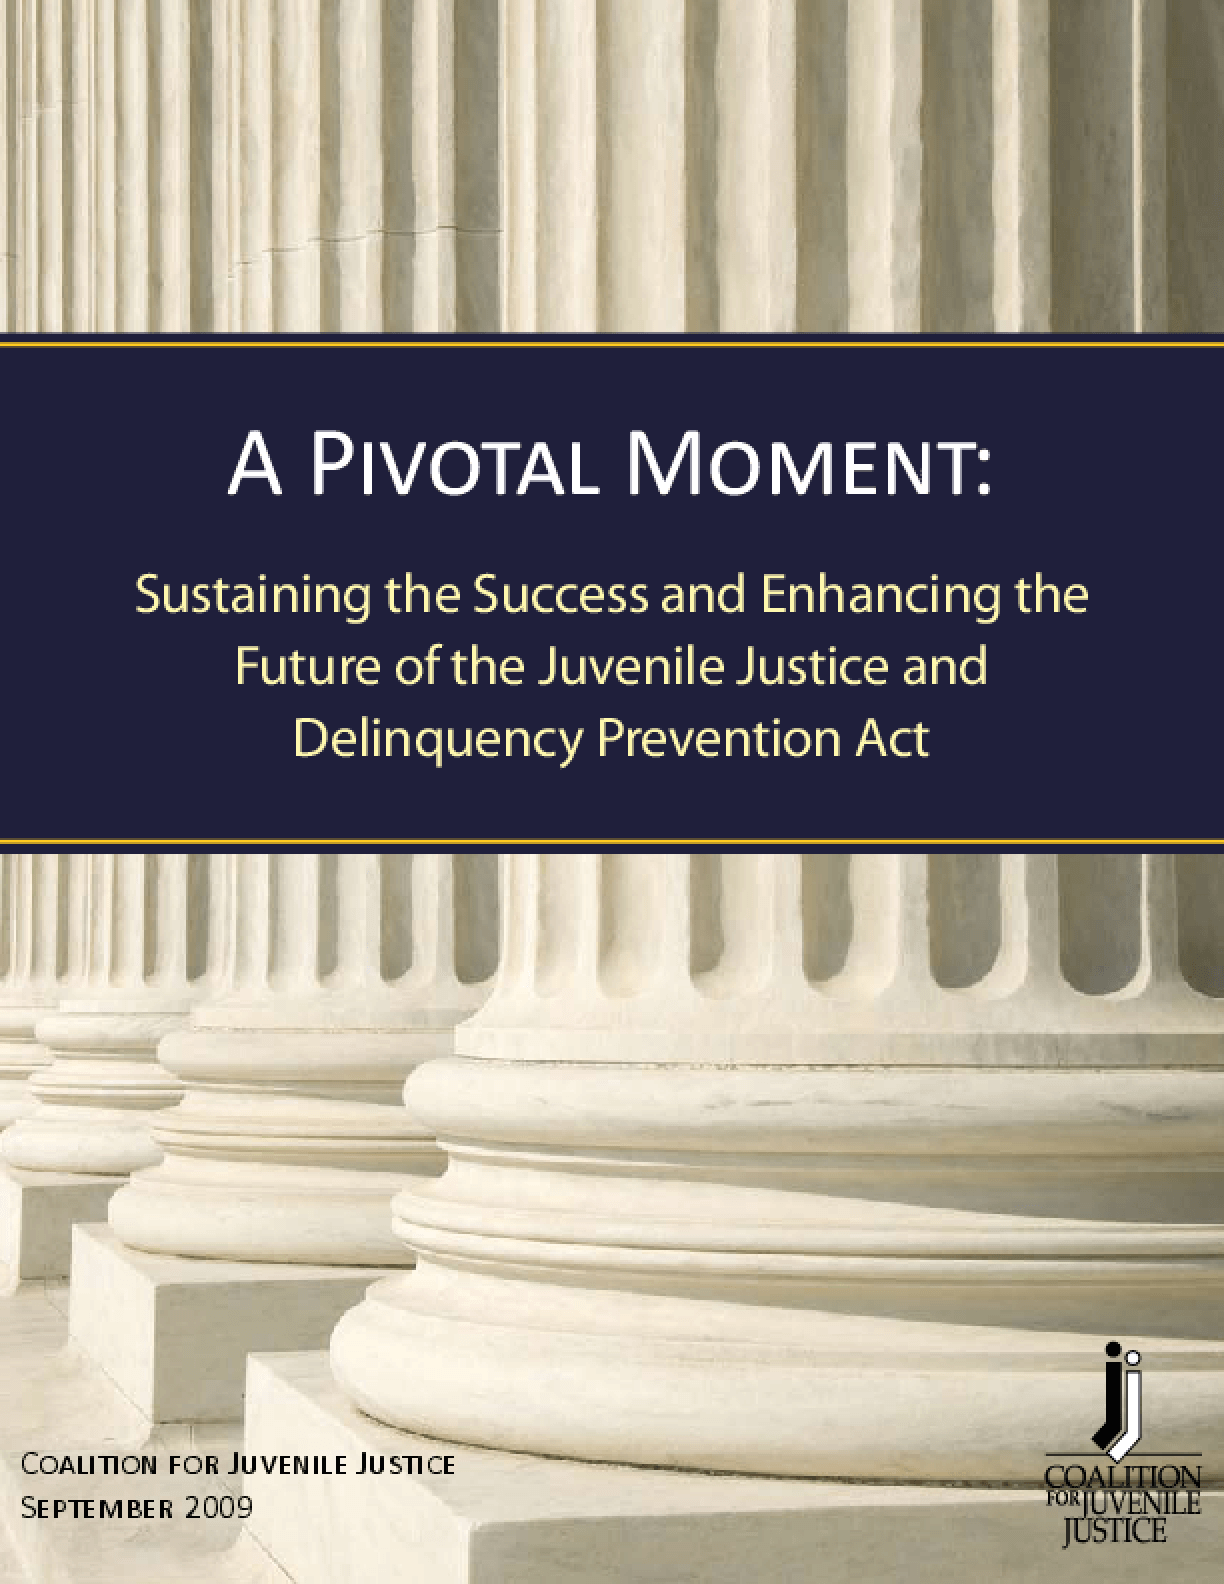 A Pivotal Moment: Sustaining the Success and Enhancing the Future of the Juvenile Justice and Delinquency Prevention Act